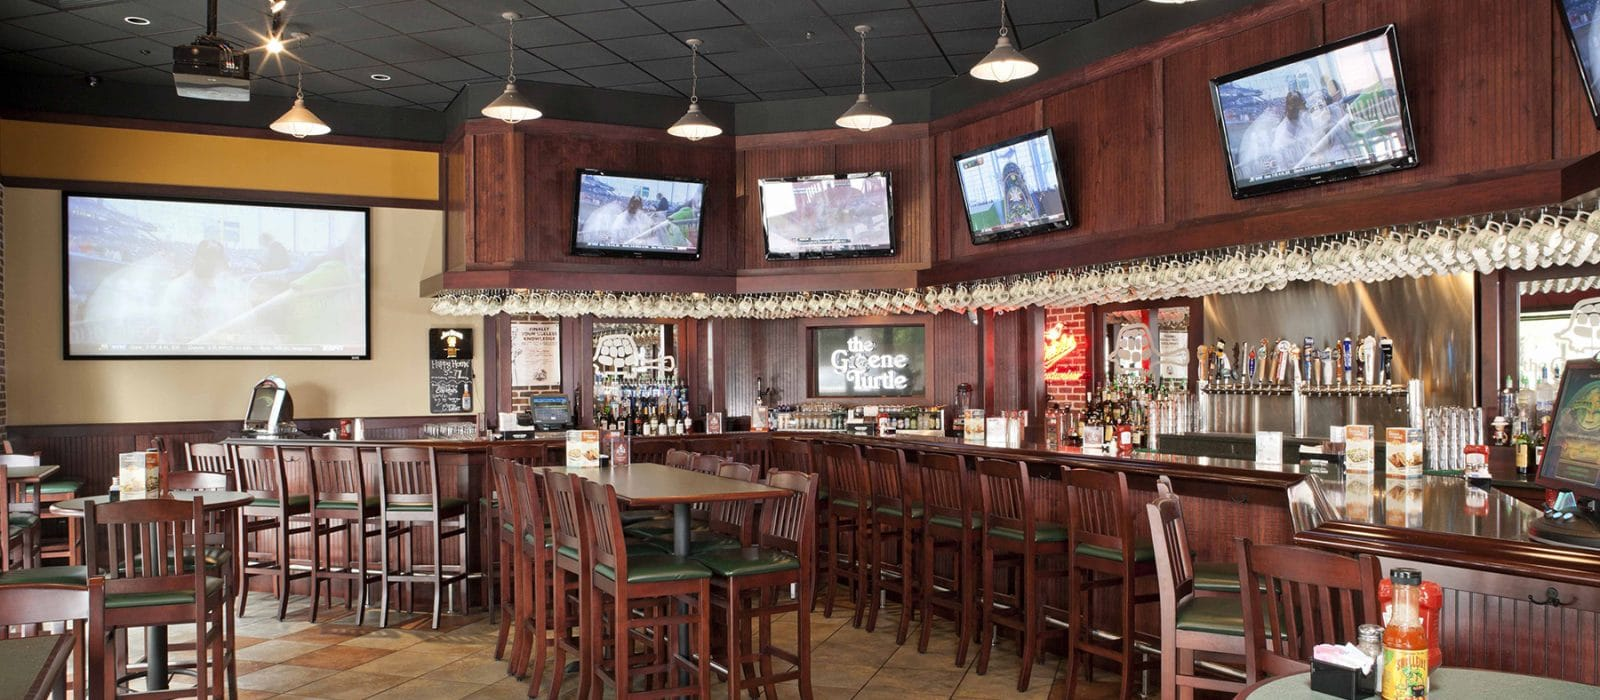 Greene Turtle Sports Bar and Grille Bar